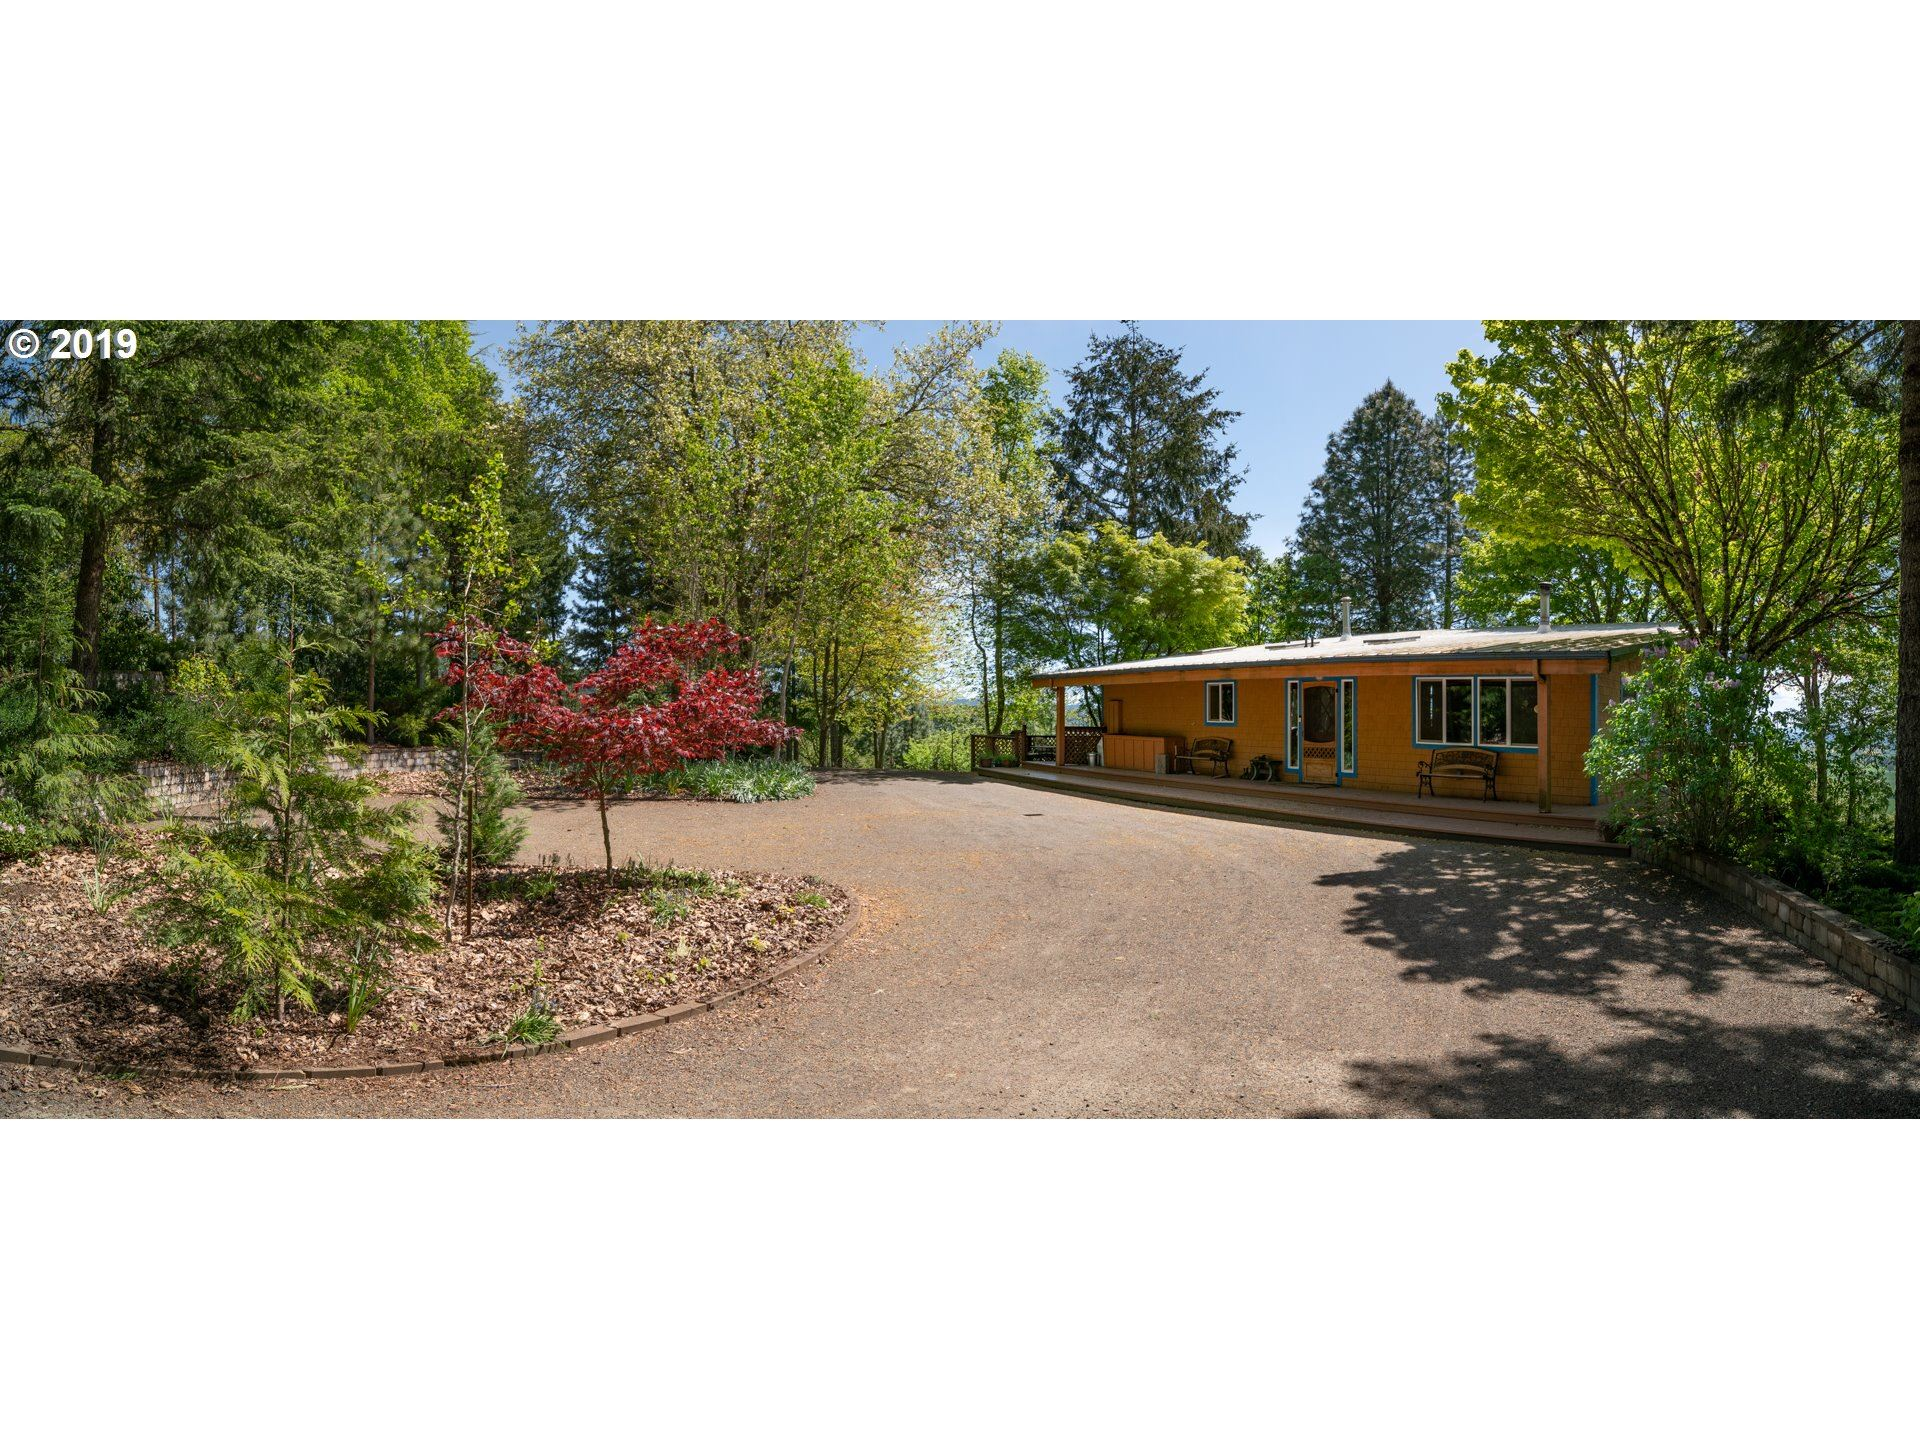 Photo of 8750 NORTH OAK GROVE RD, Rickreall, OR 97371 (MLS # 19229485)